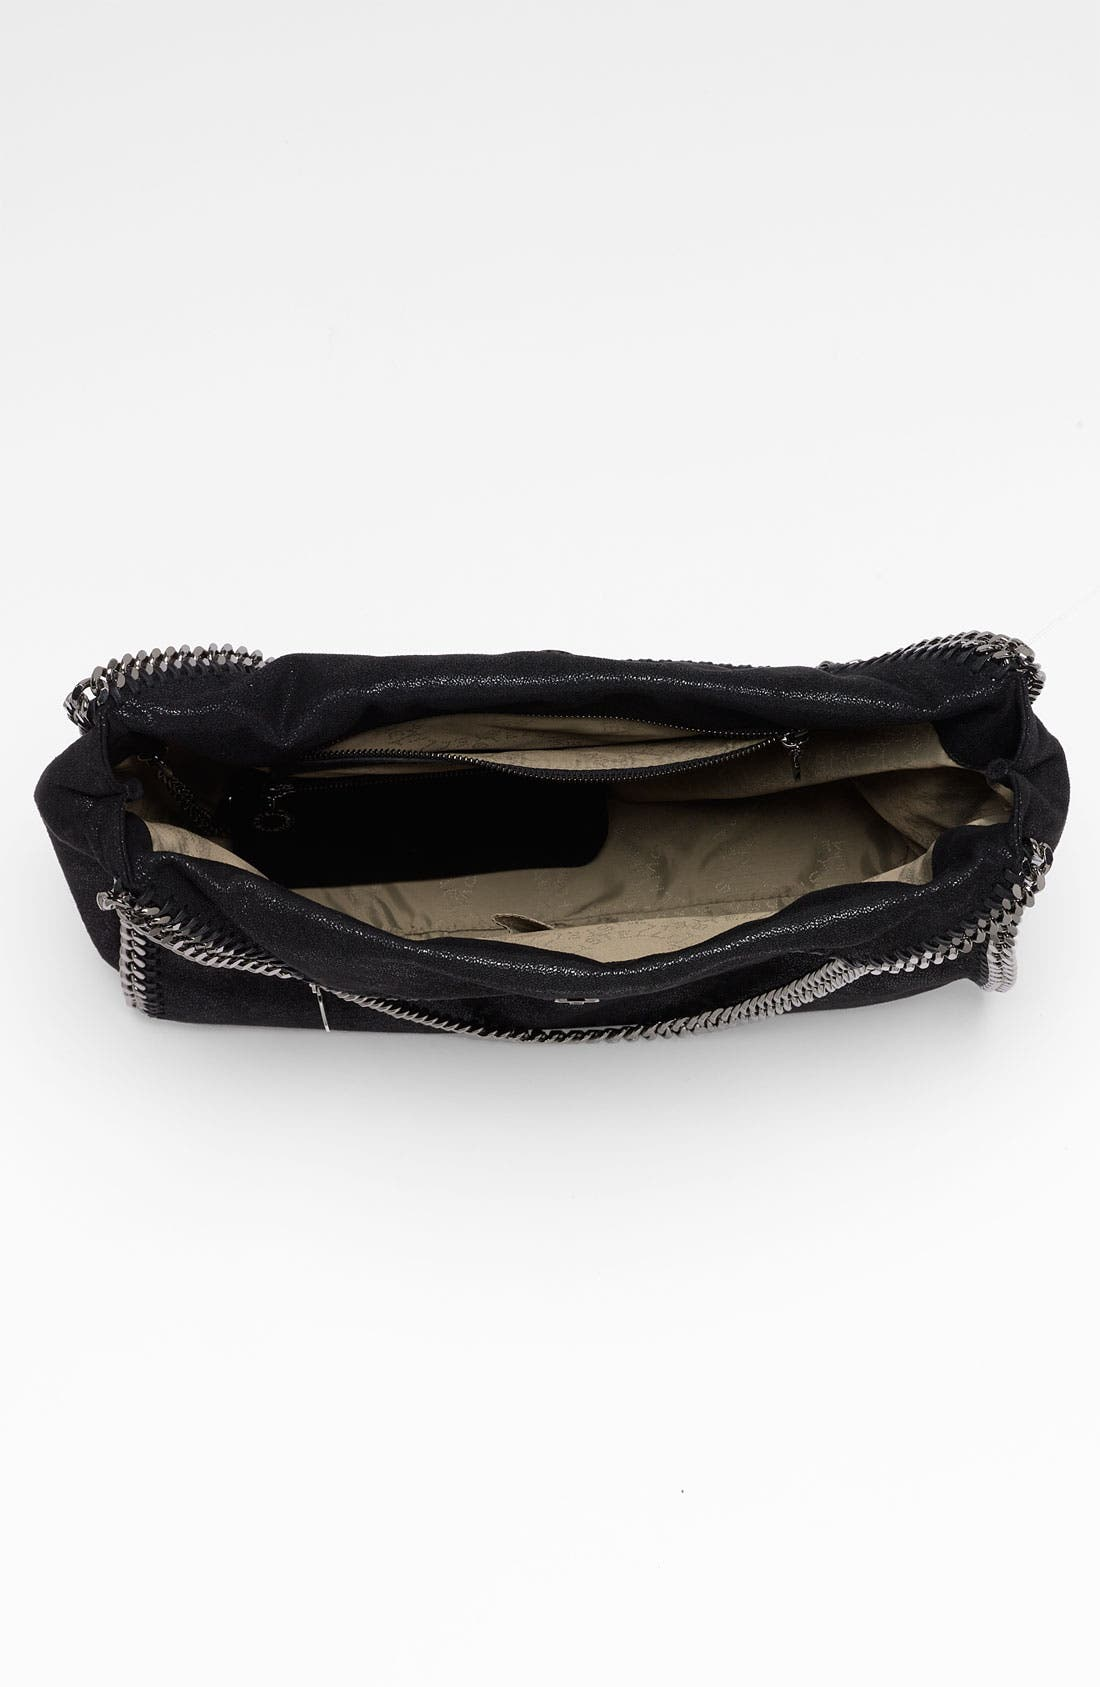 STELLA MCCARTNEY,                             'Large Falabella - Shaggy Deer' Faux Leather Tote,                             Alternate thumbnail 4, color,                             001